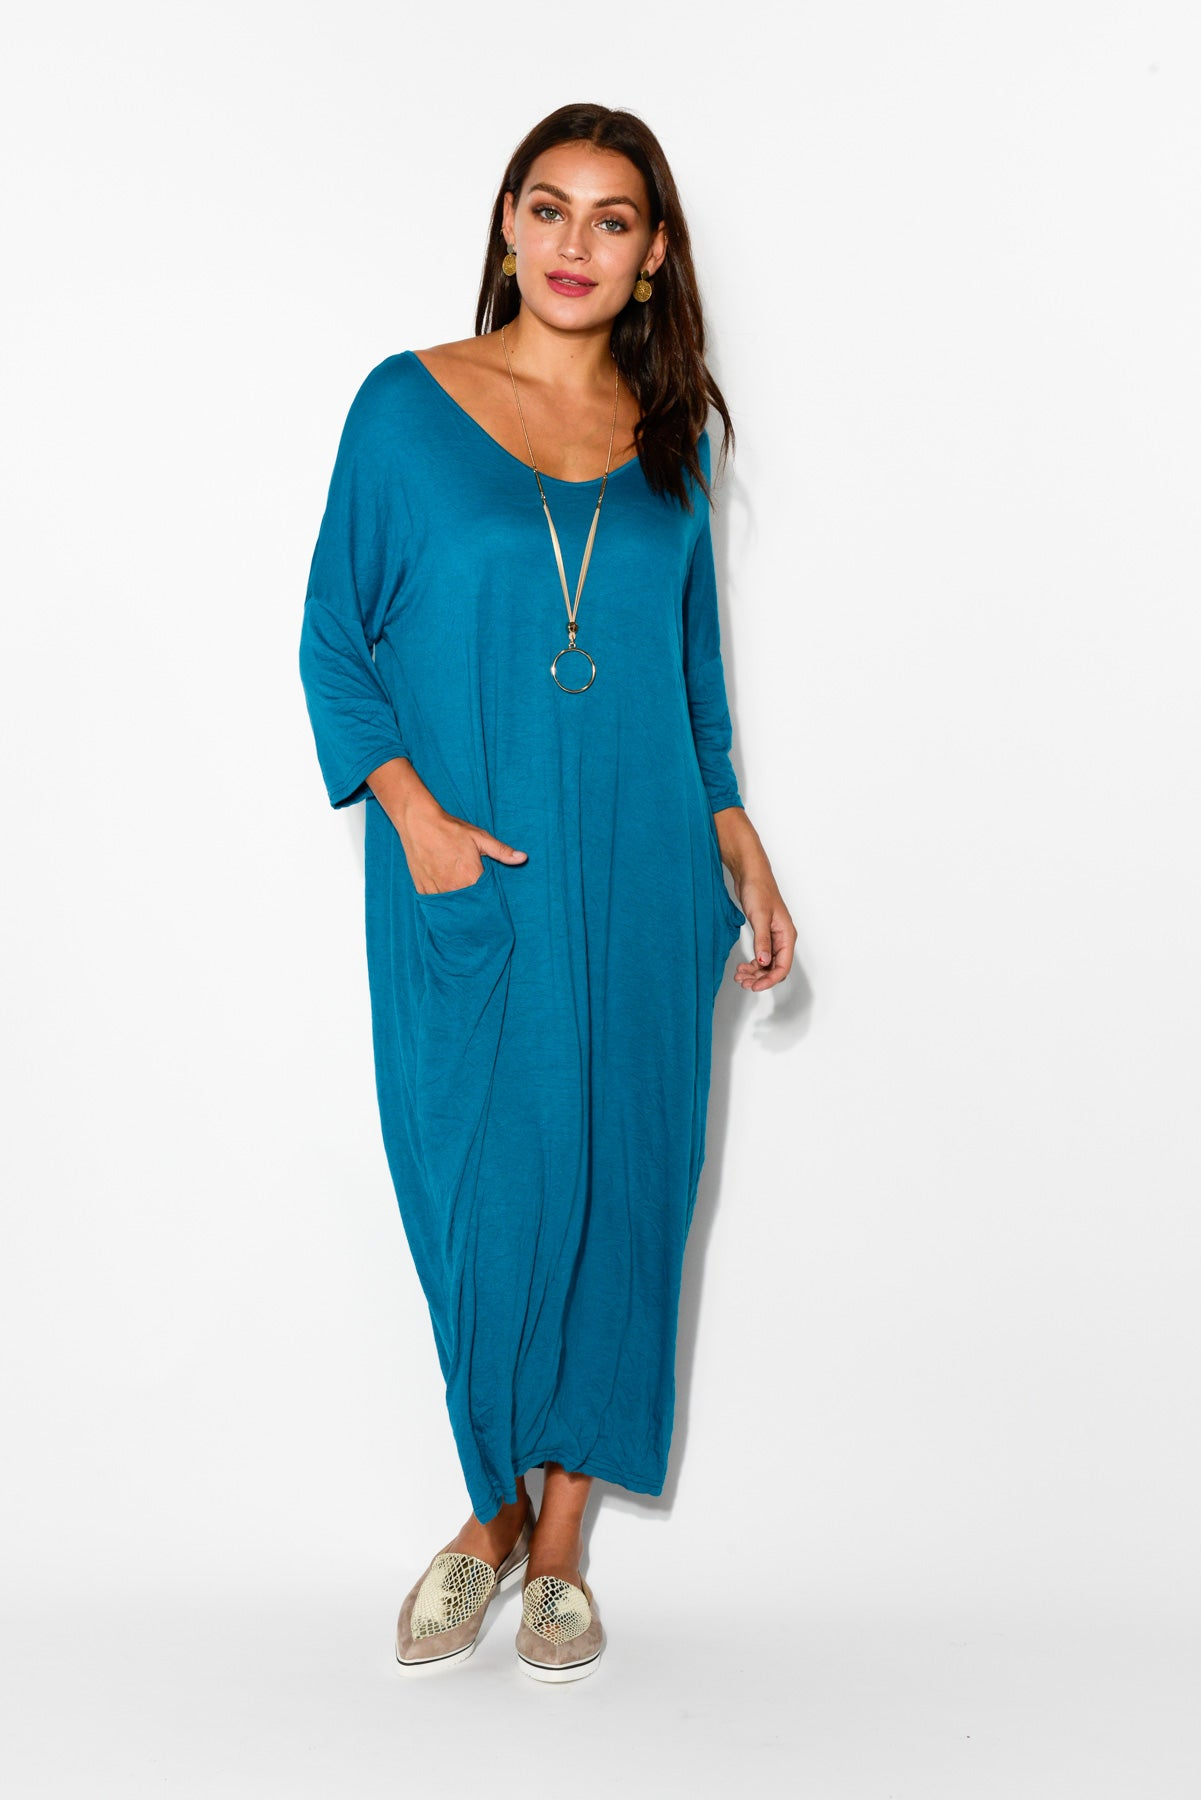 Teal Sleeved Pocket Cotton Dress - Blue Bungalow